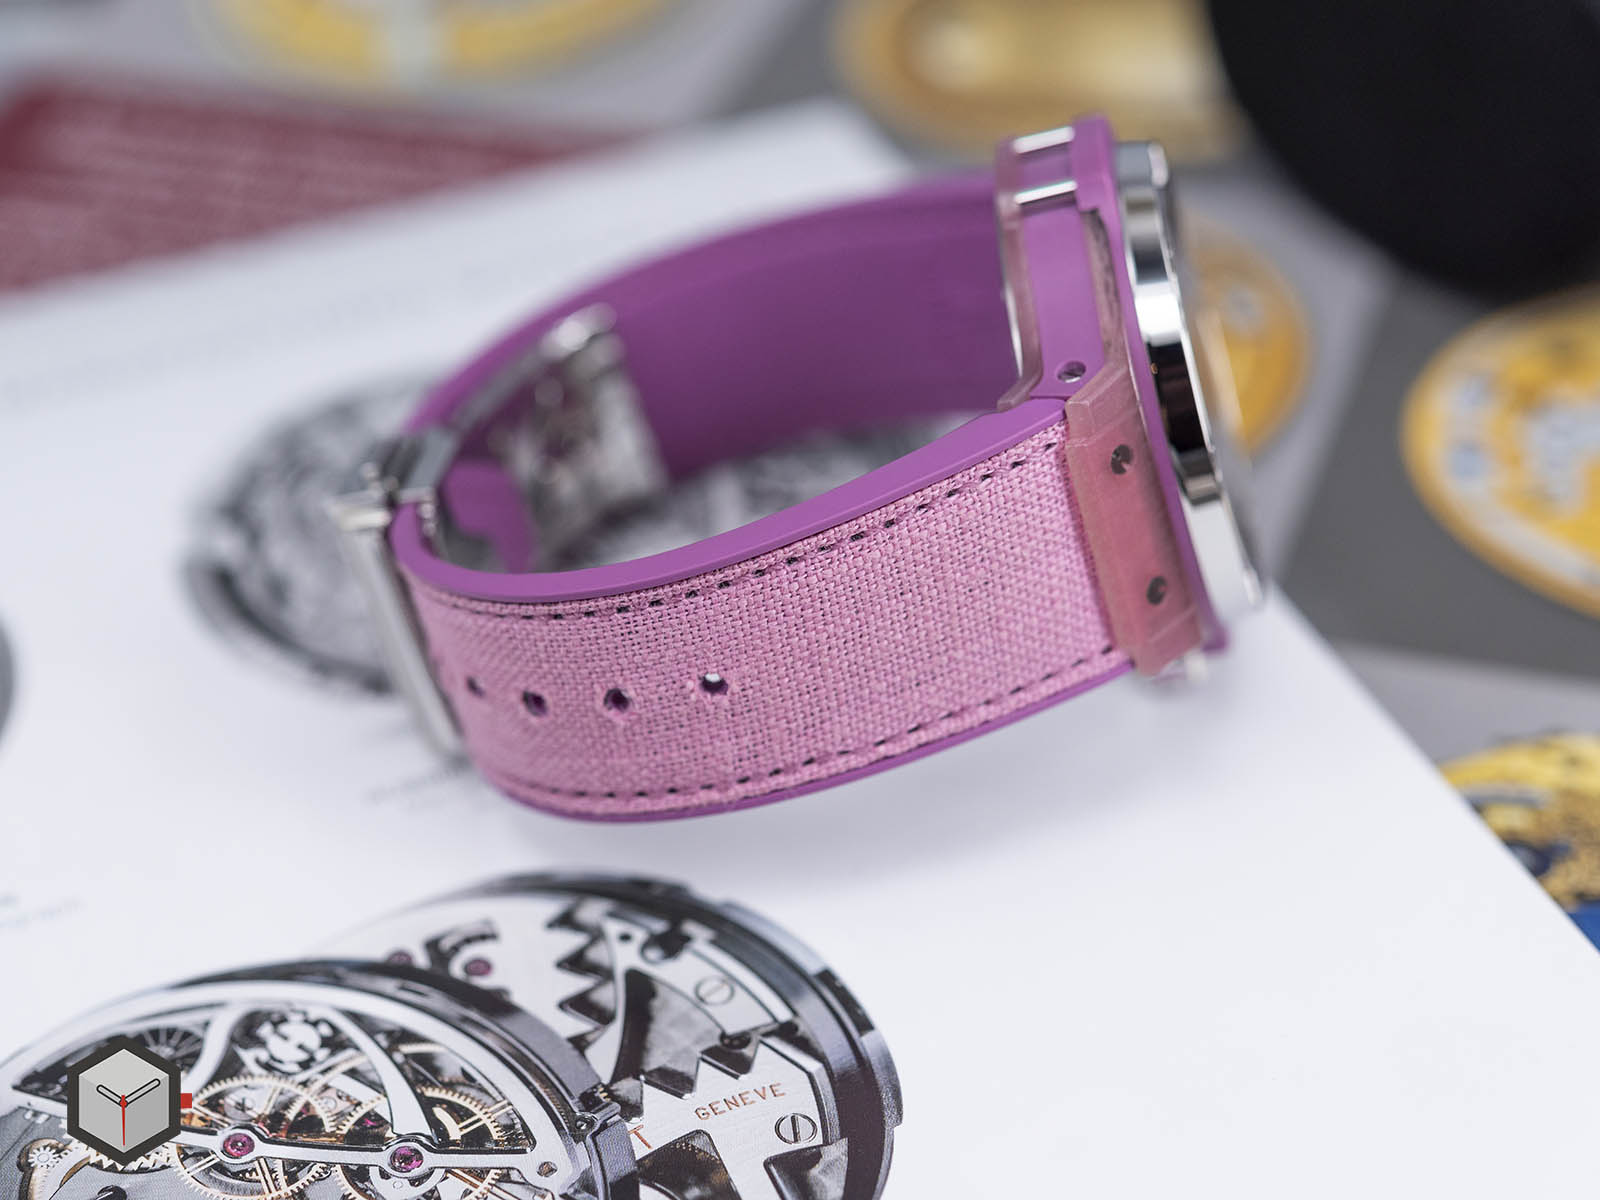 341-xp-2770-nr-1205-hublot-big-bang-purple-linen-7.jpg